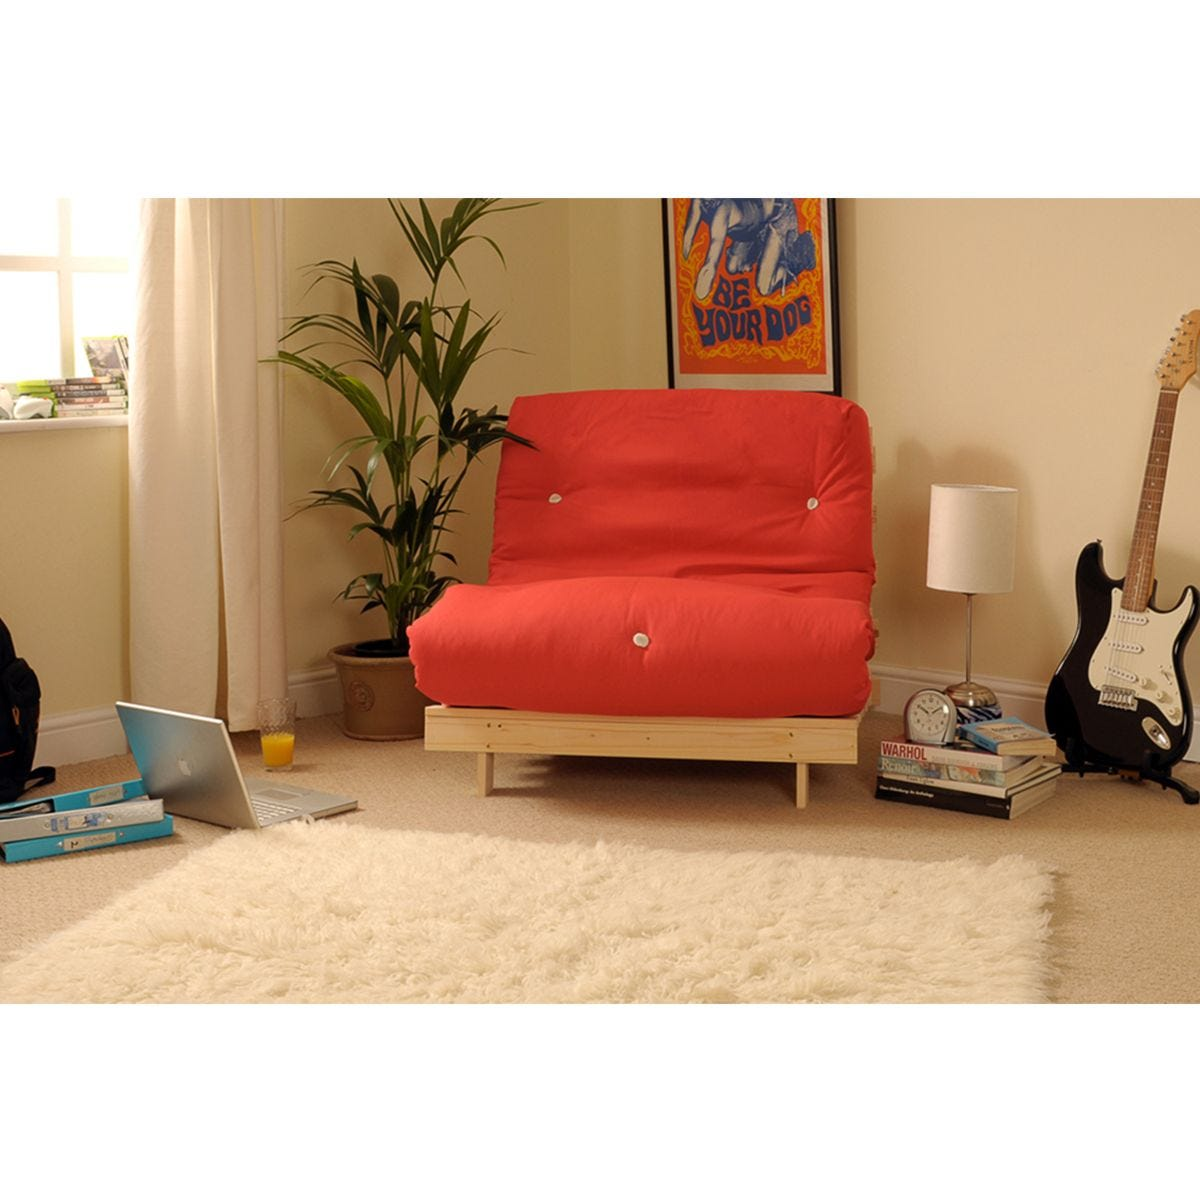 Albury Red Futon Set With Tufted Mattress - Small Double